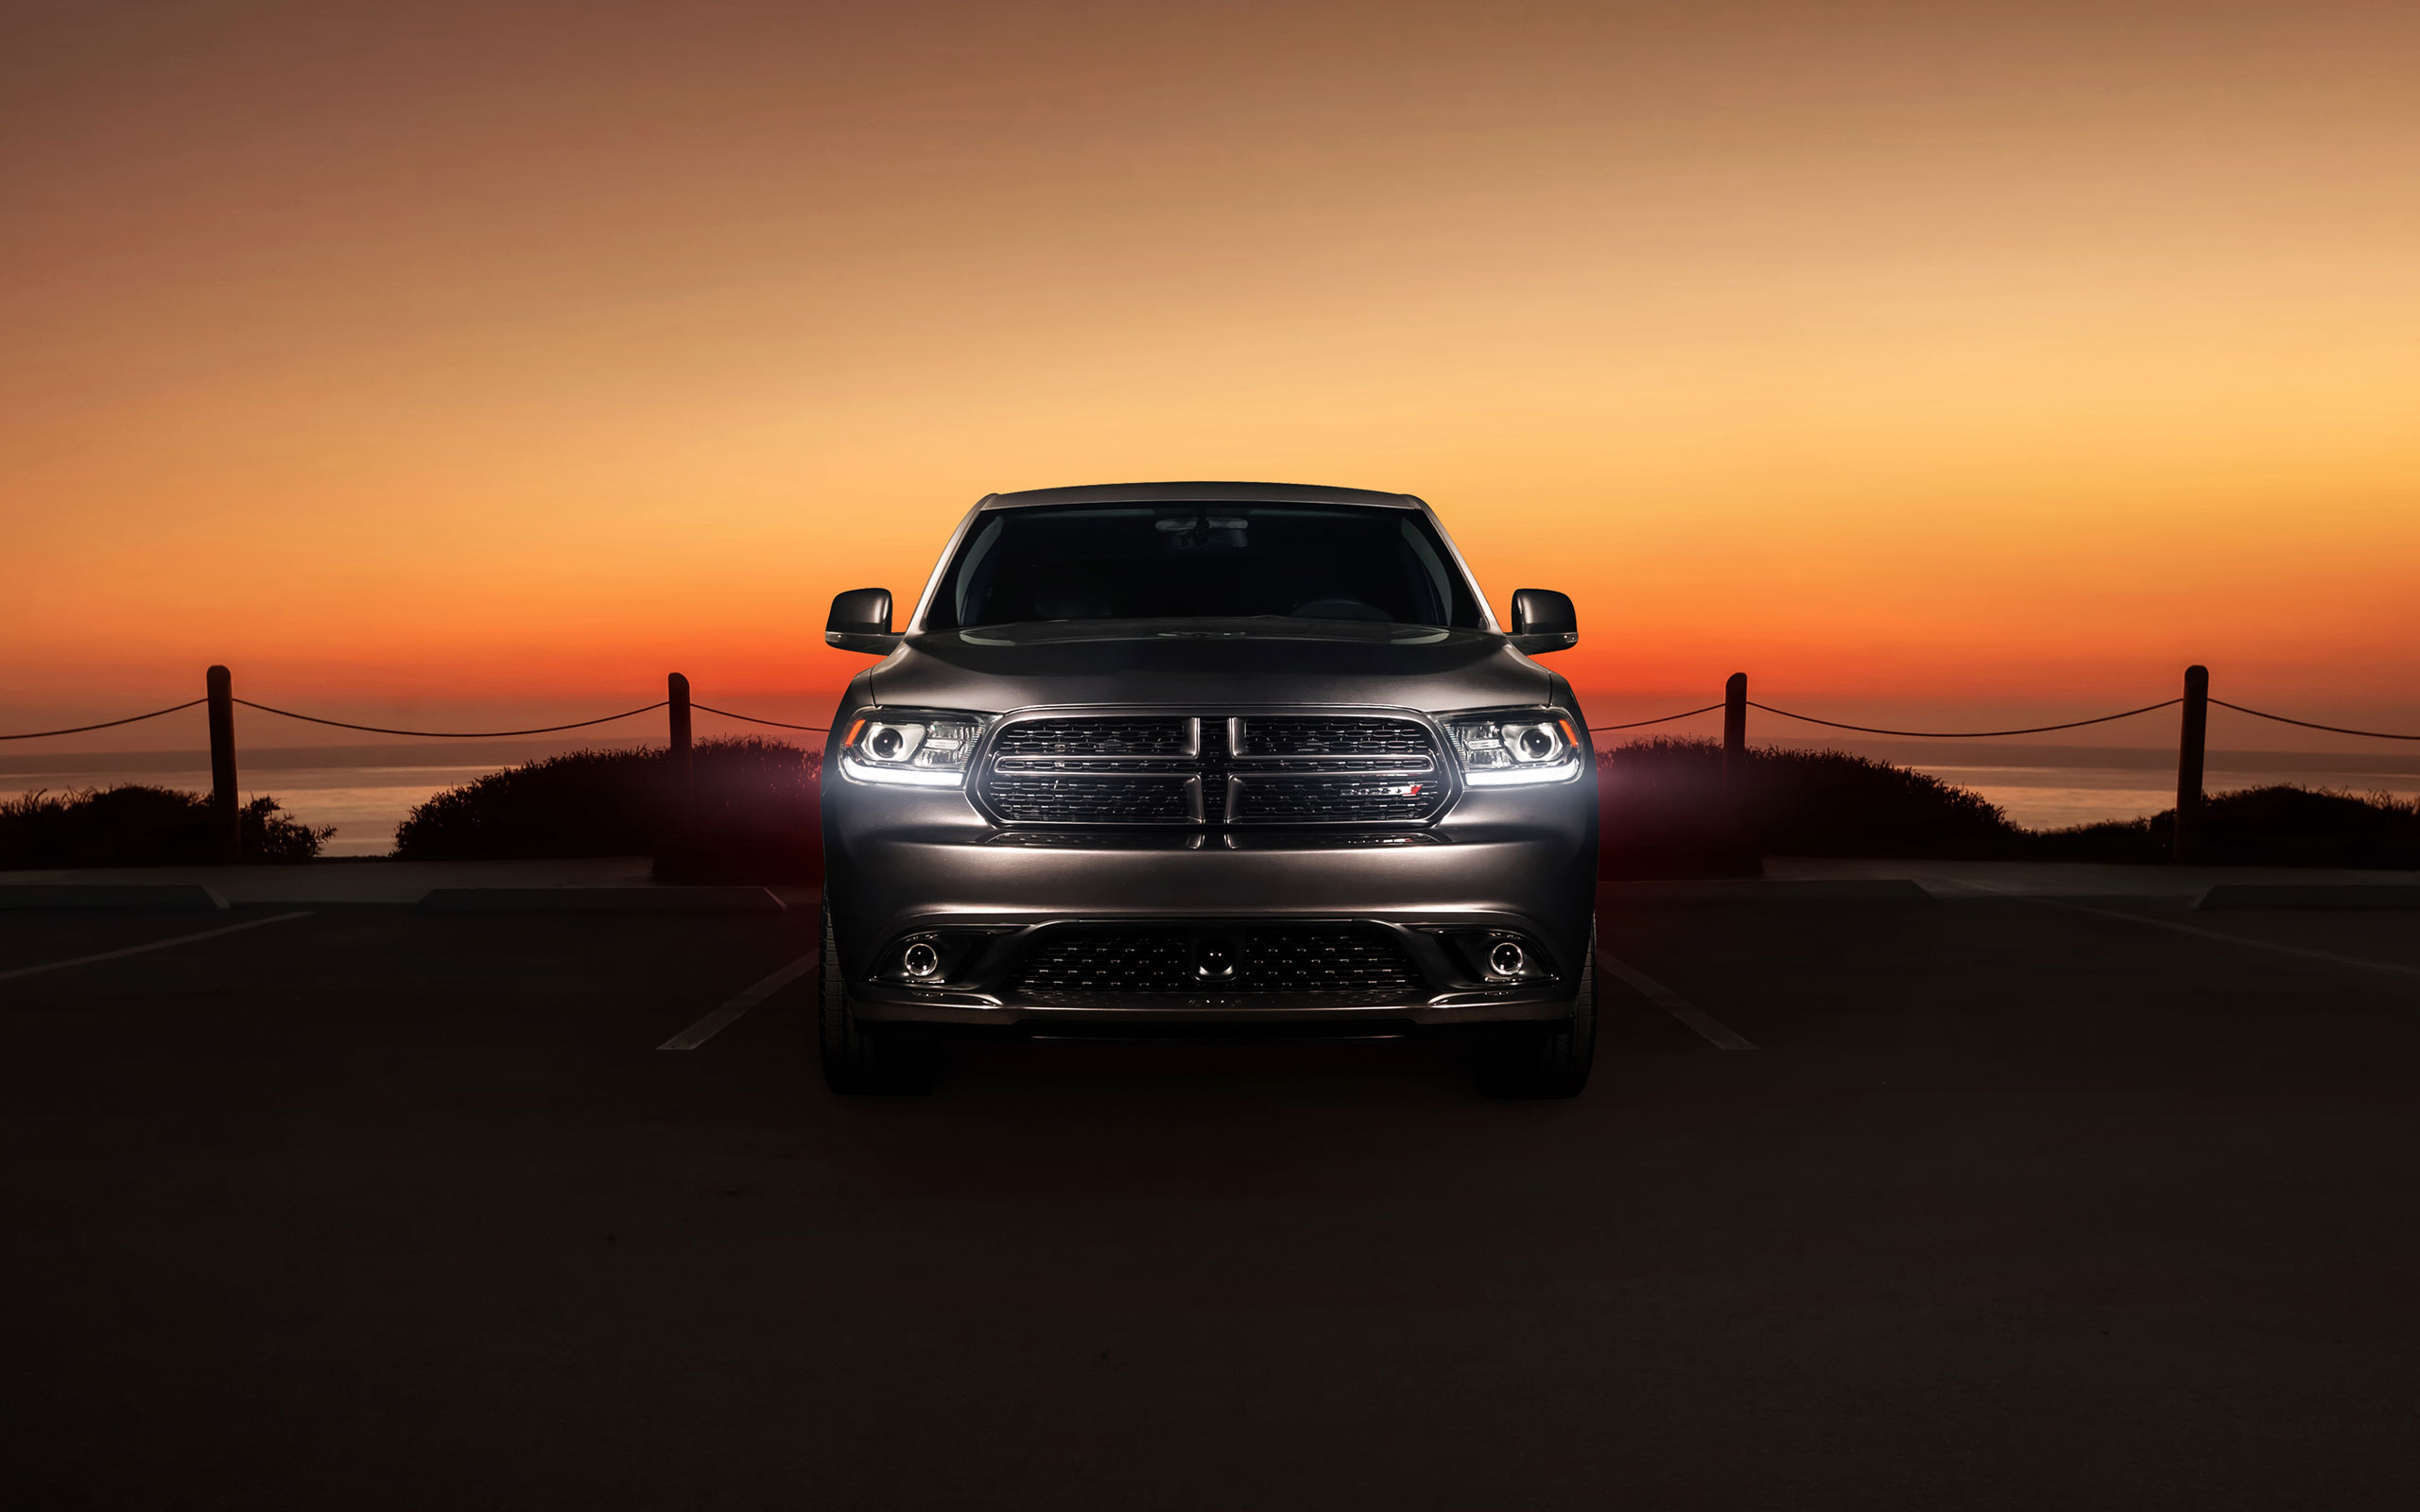 2014 Dodge Durango 2 Wallpaper Hd Car Wallpapers Id 3359